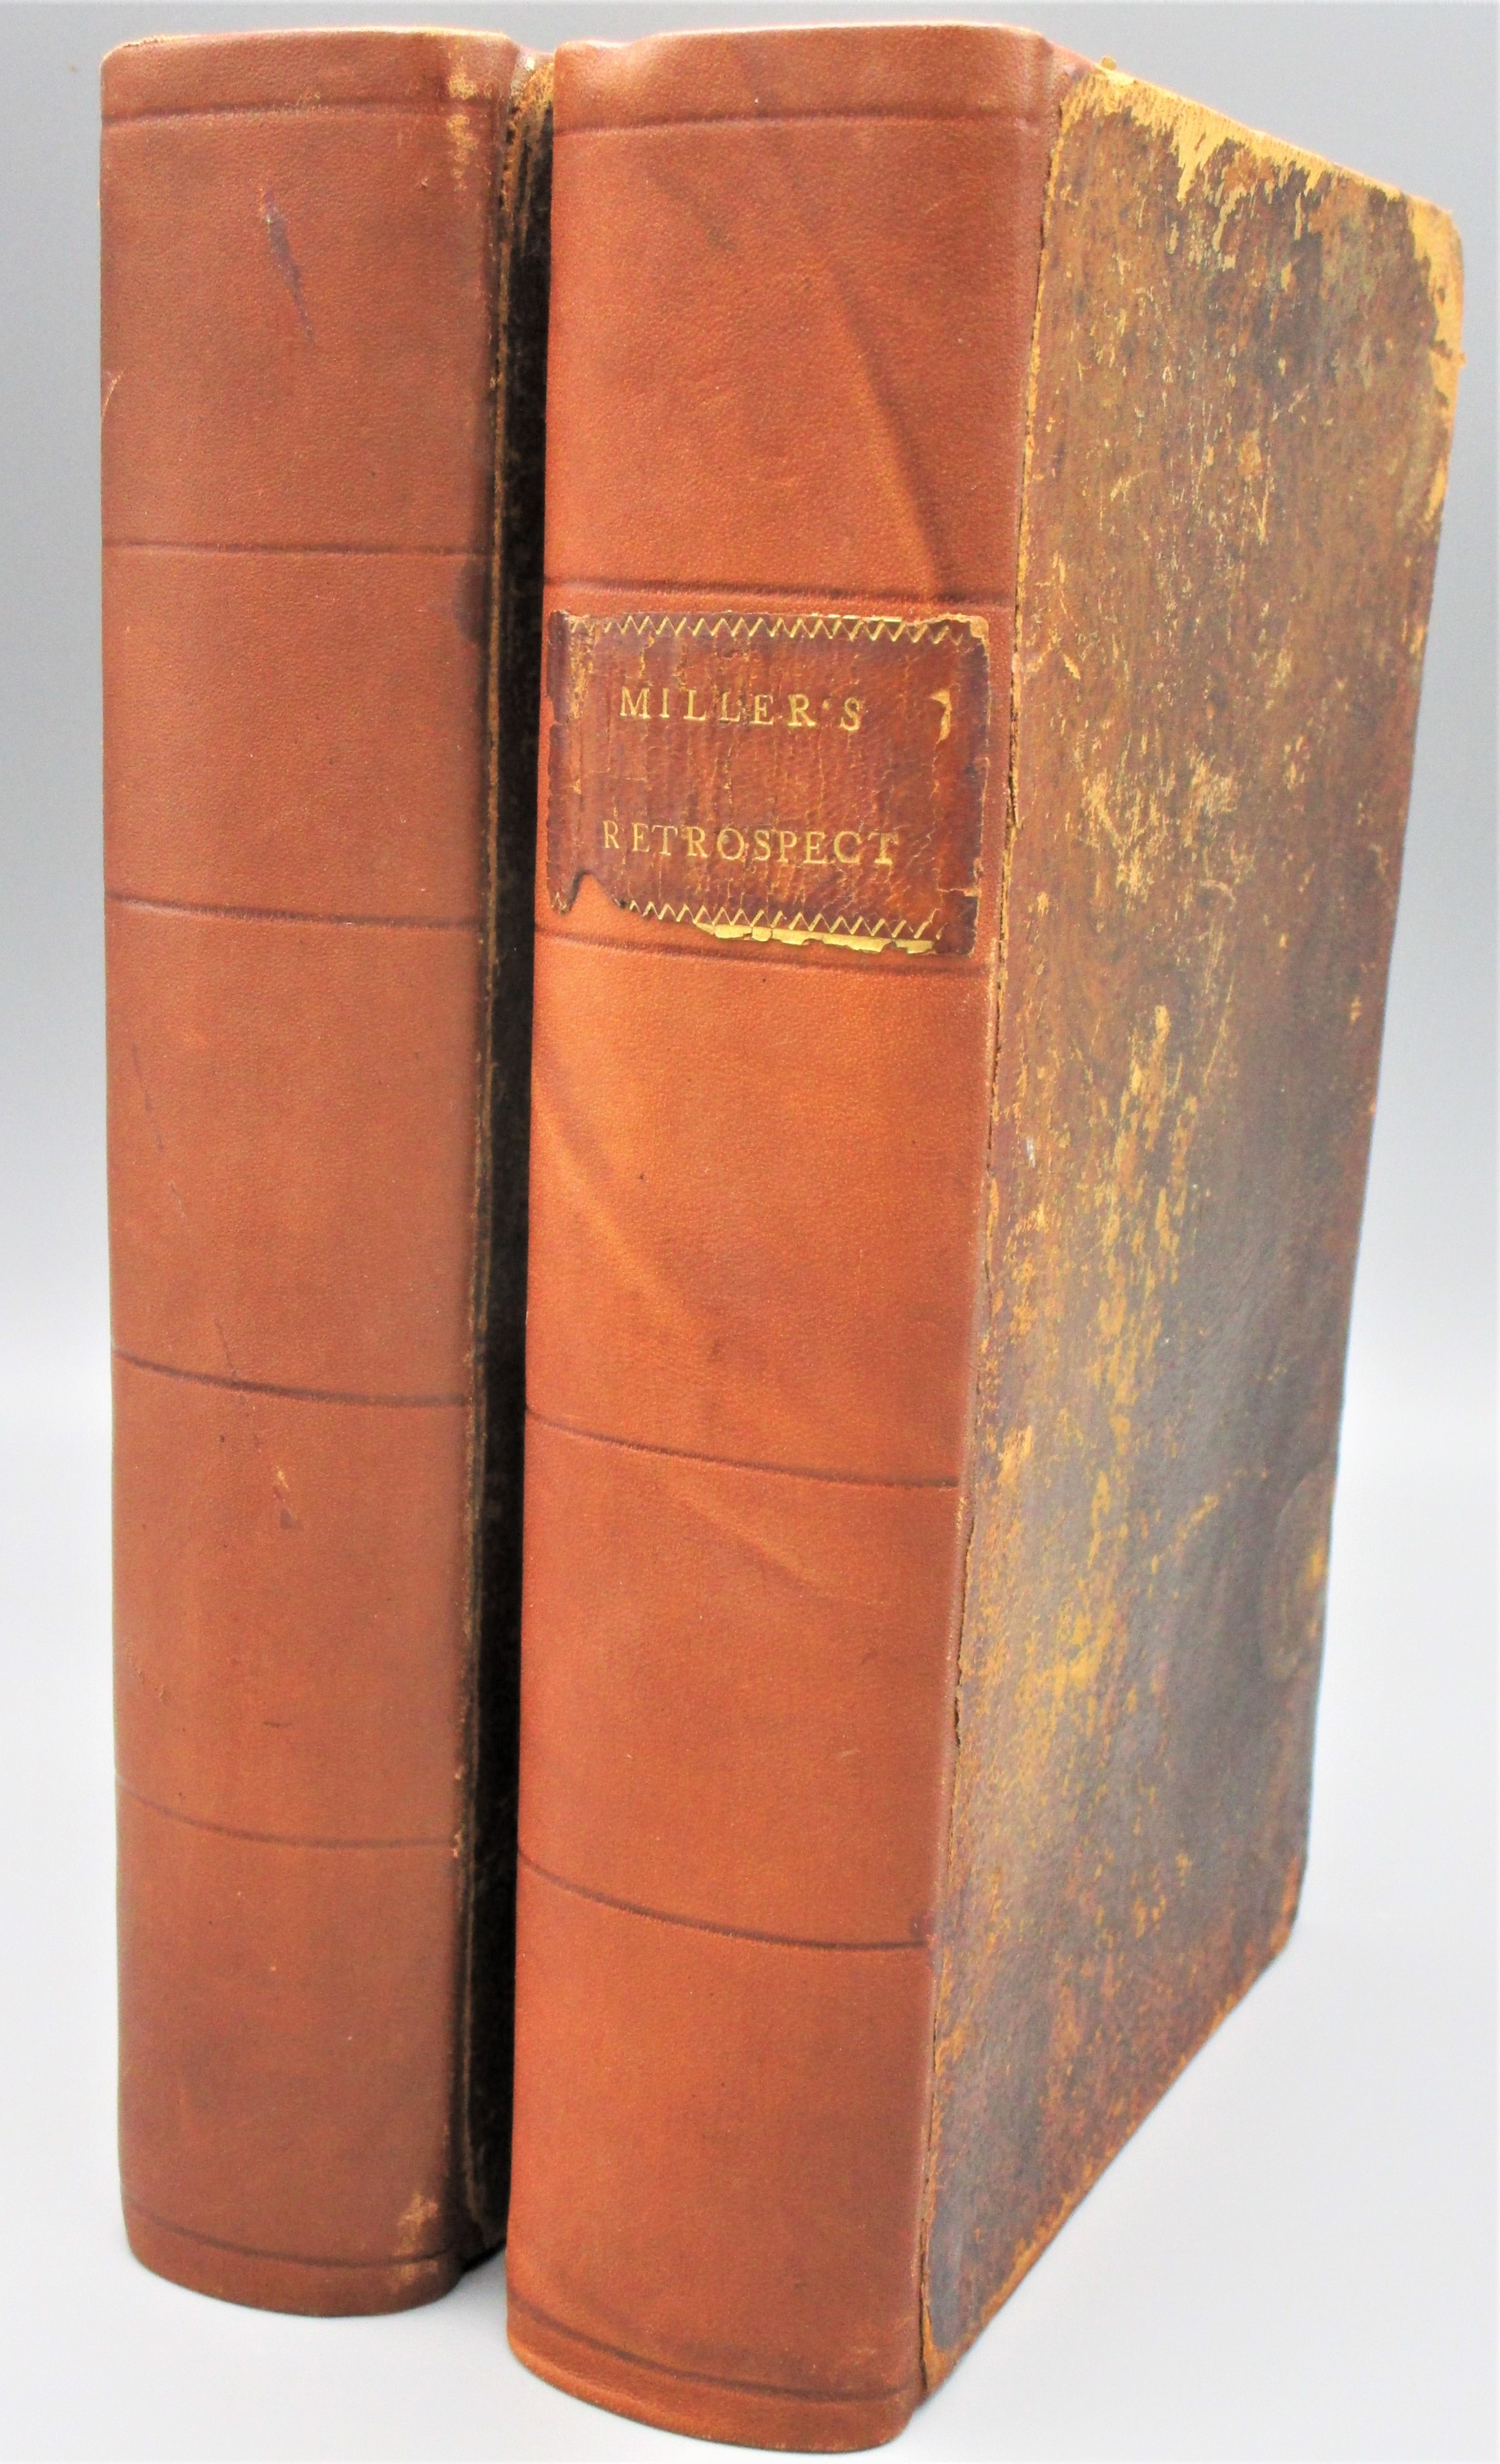 A BRIEF RETROSPECT OF THE EIGHTEENTH CENTURY, by Samuel Miller - 1803 [2 vols]